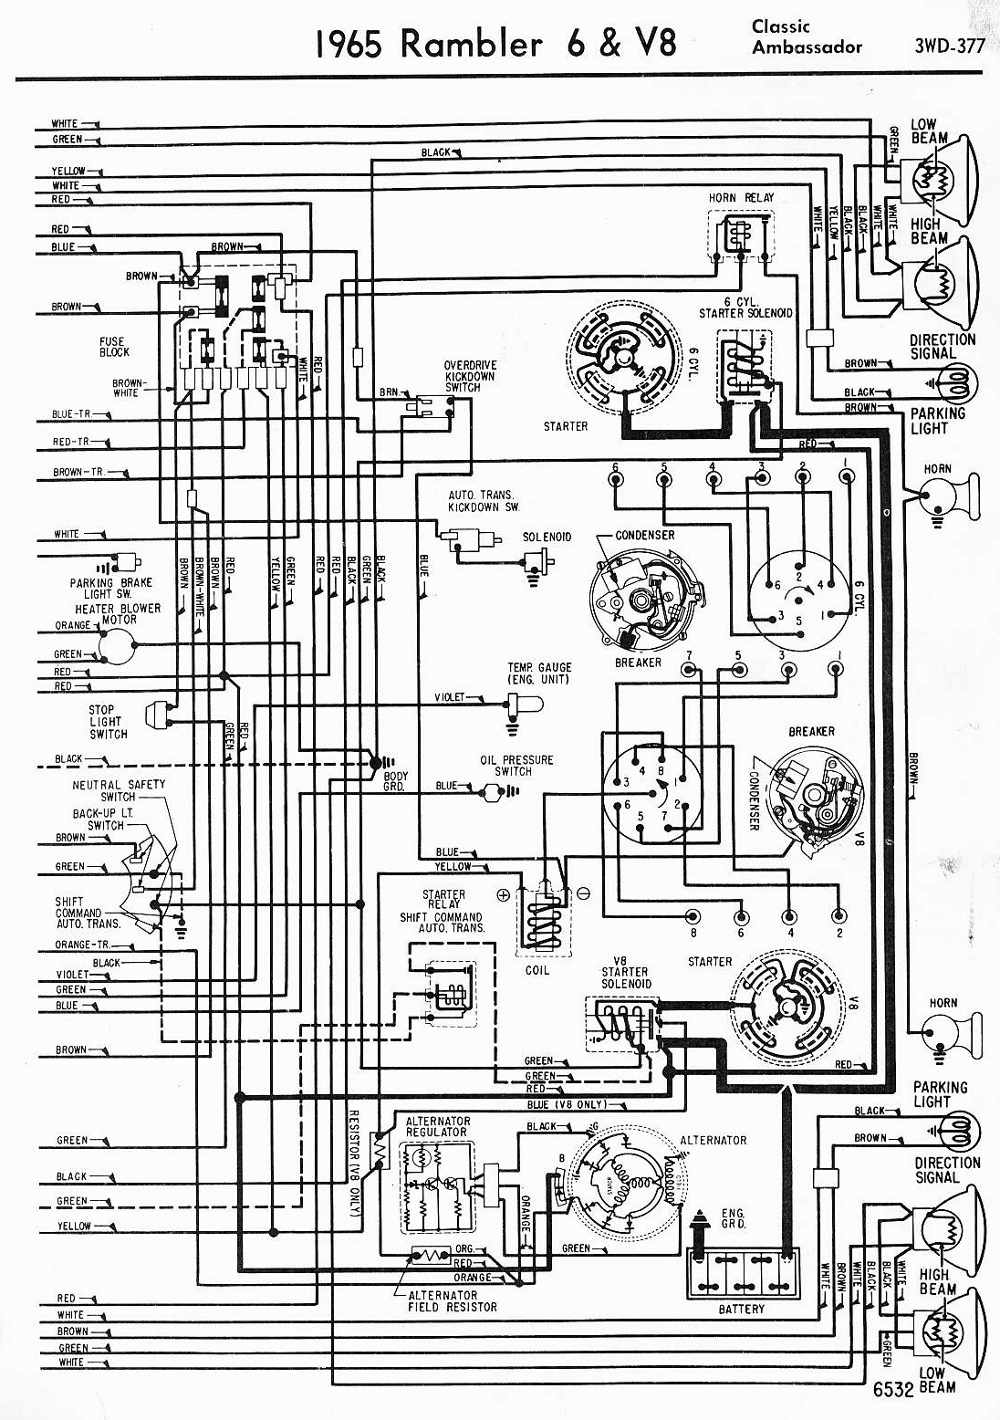 wiring diagrams of 1965 AMC rambler 6 and v8 classic and ambassador part 2?td1484904655 ford transit wiring diagram download efcaviation com ford electrical wiring diagrams at eliteediting.co